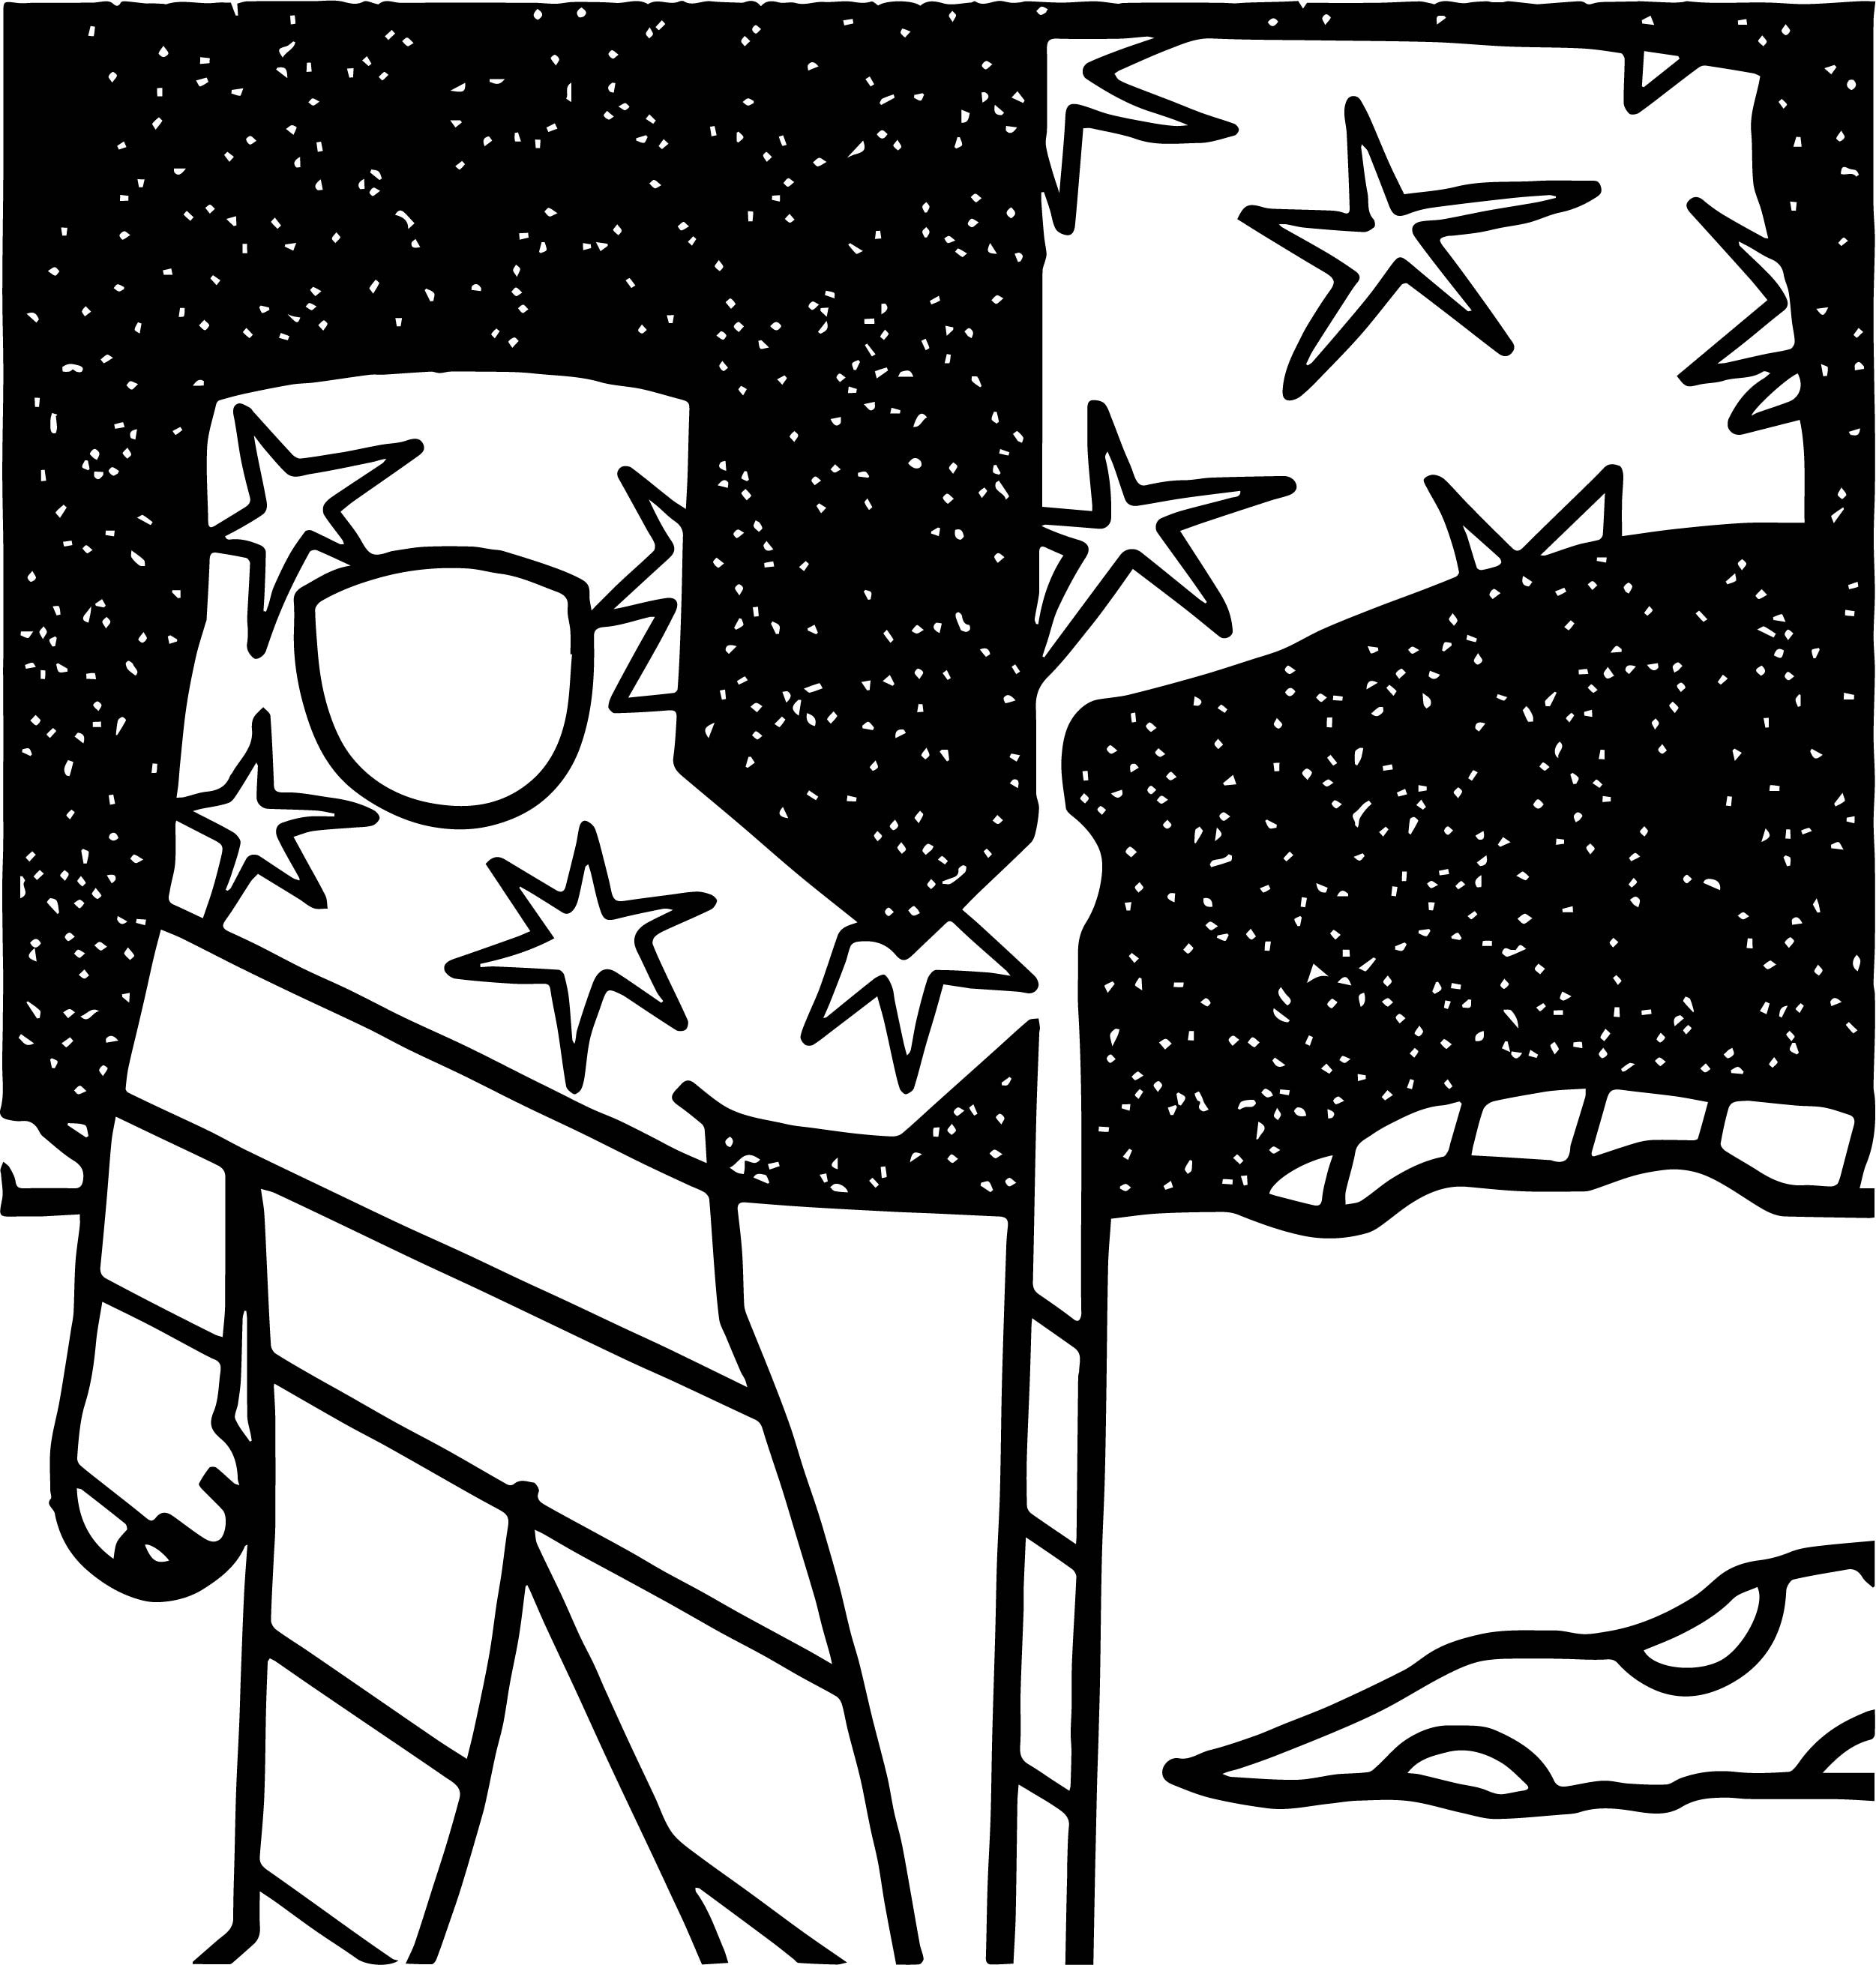 2502x2621 Astronaut On The Moon Coloring Pages With Us Flag For Kids Fresh